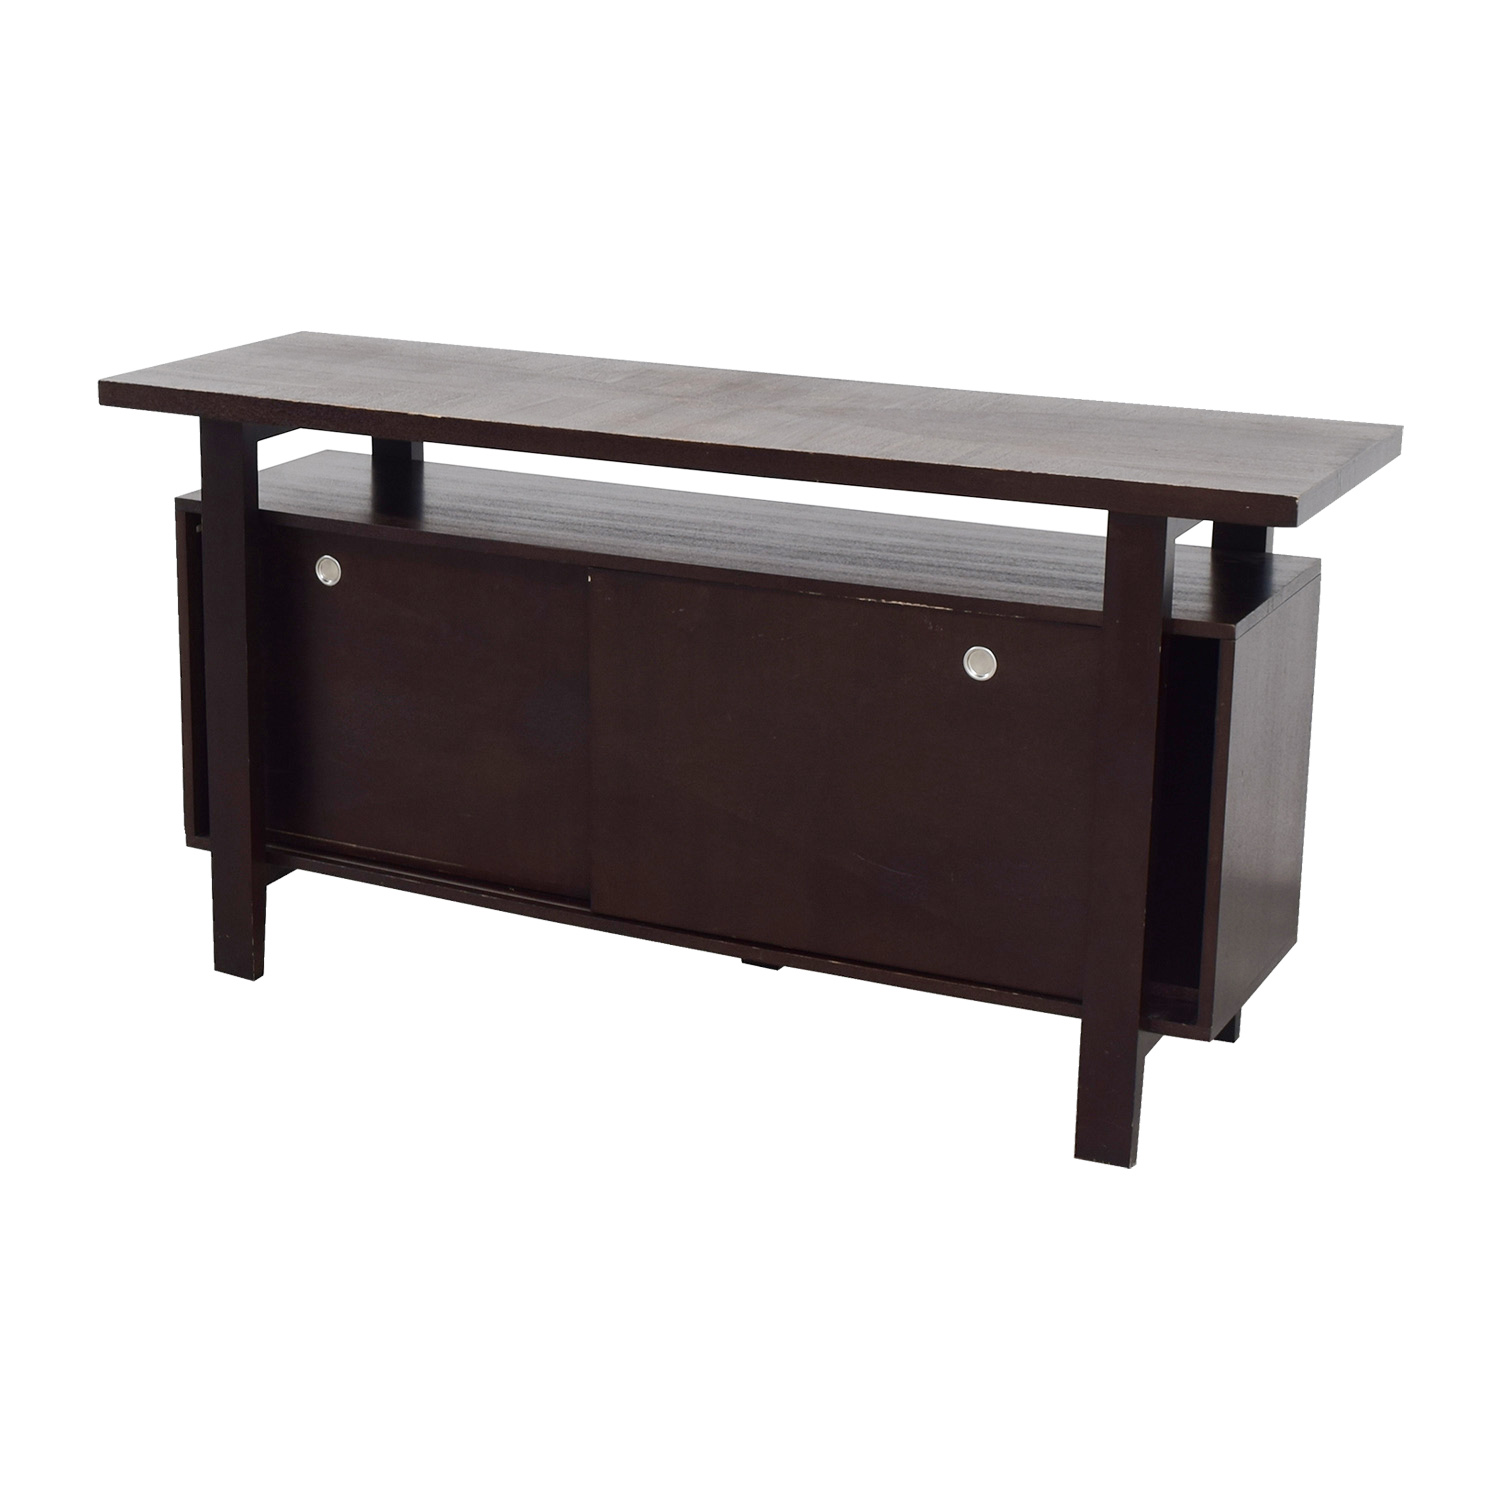 buy Brown Server with Interior Shelves online